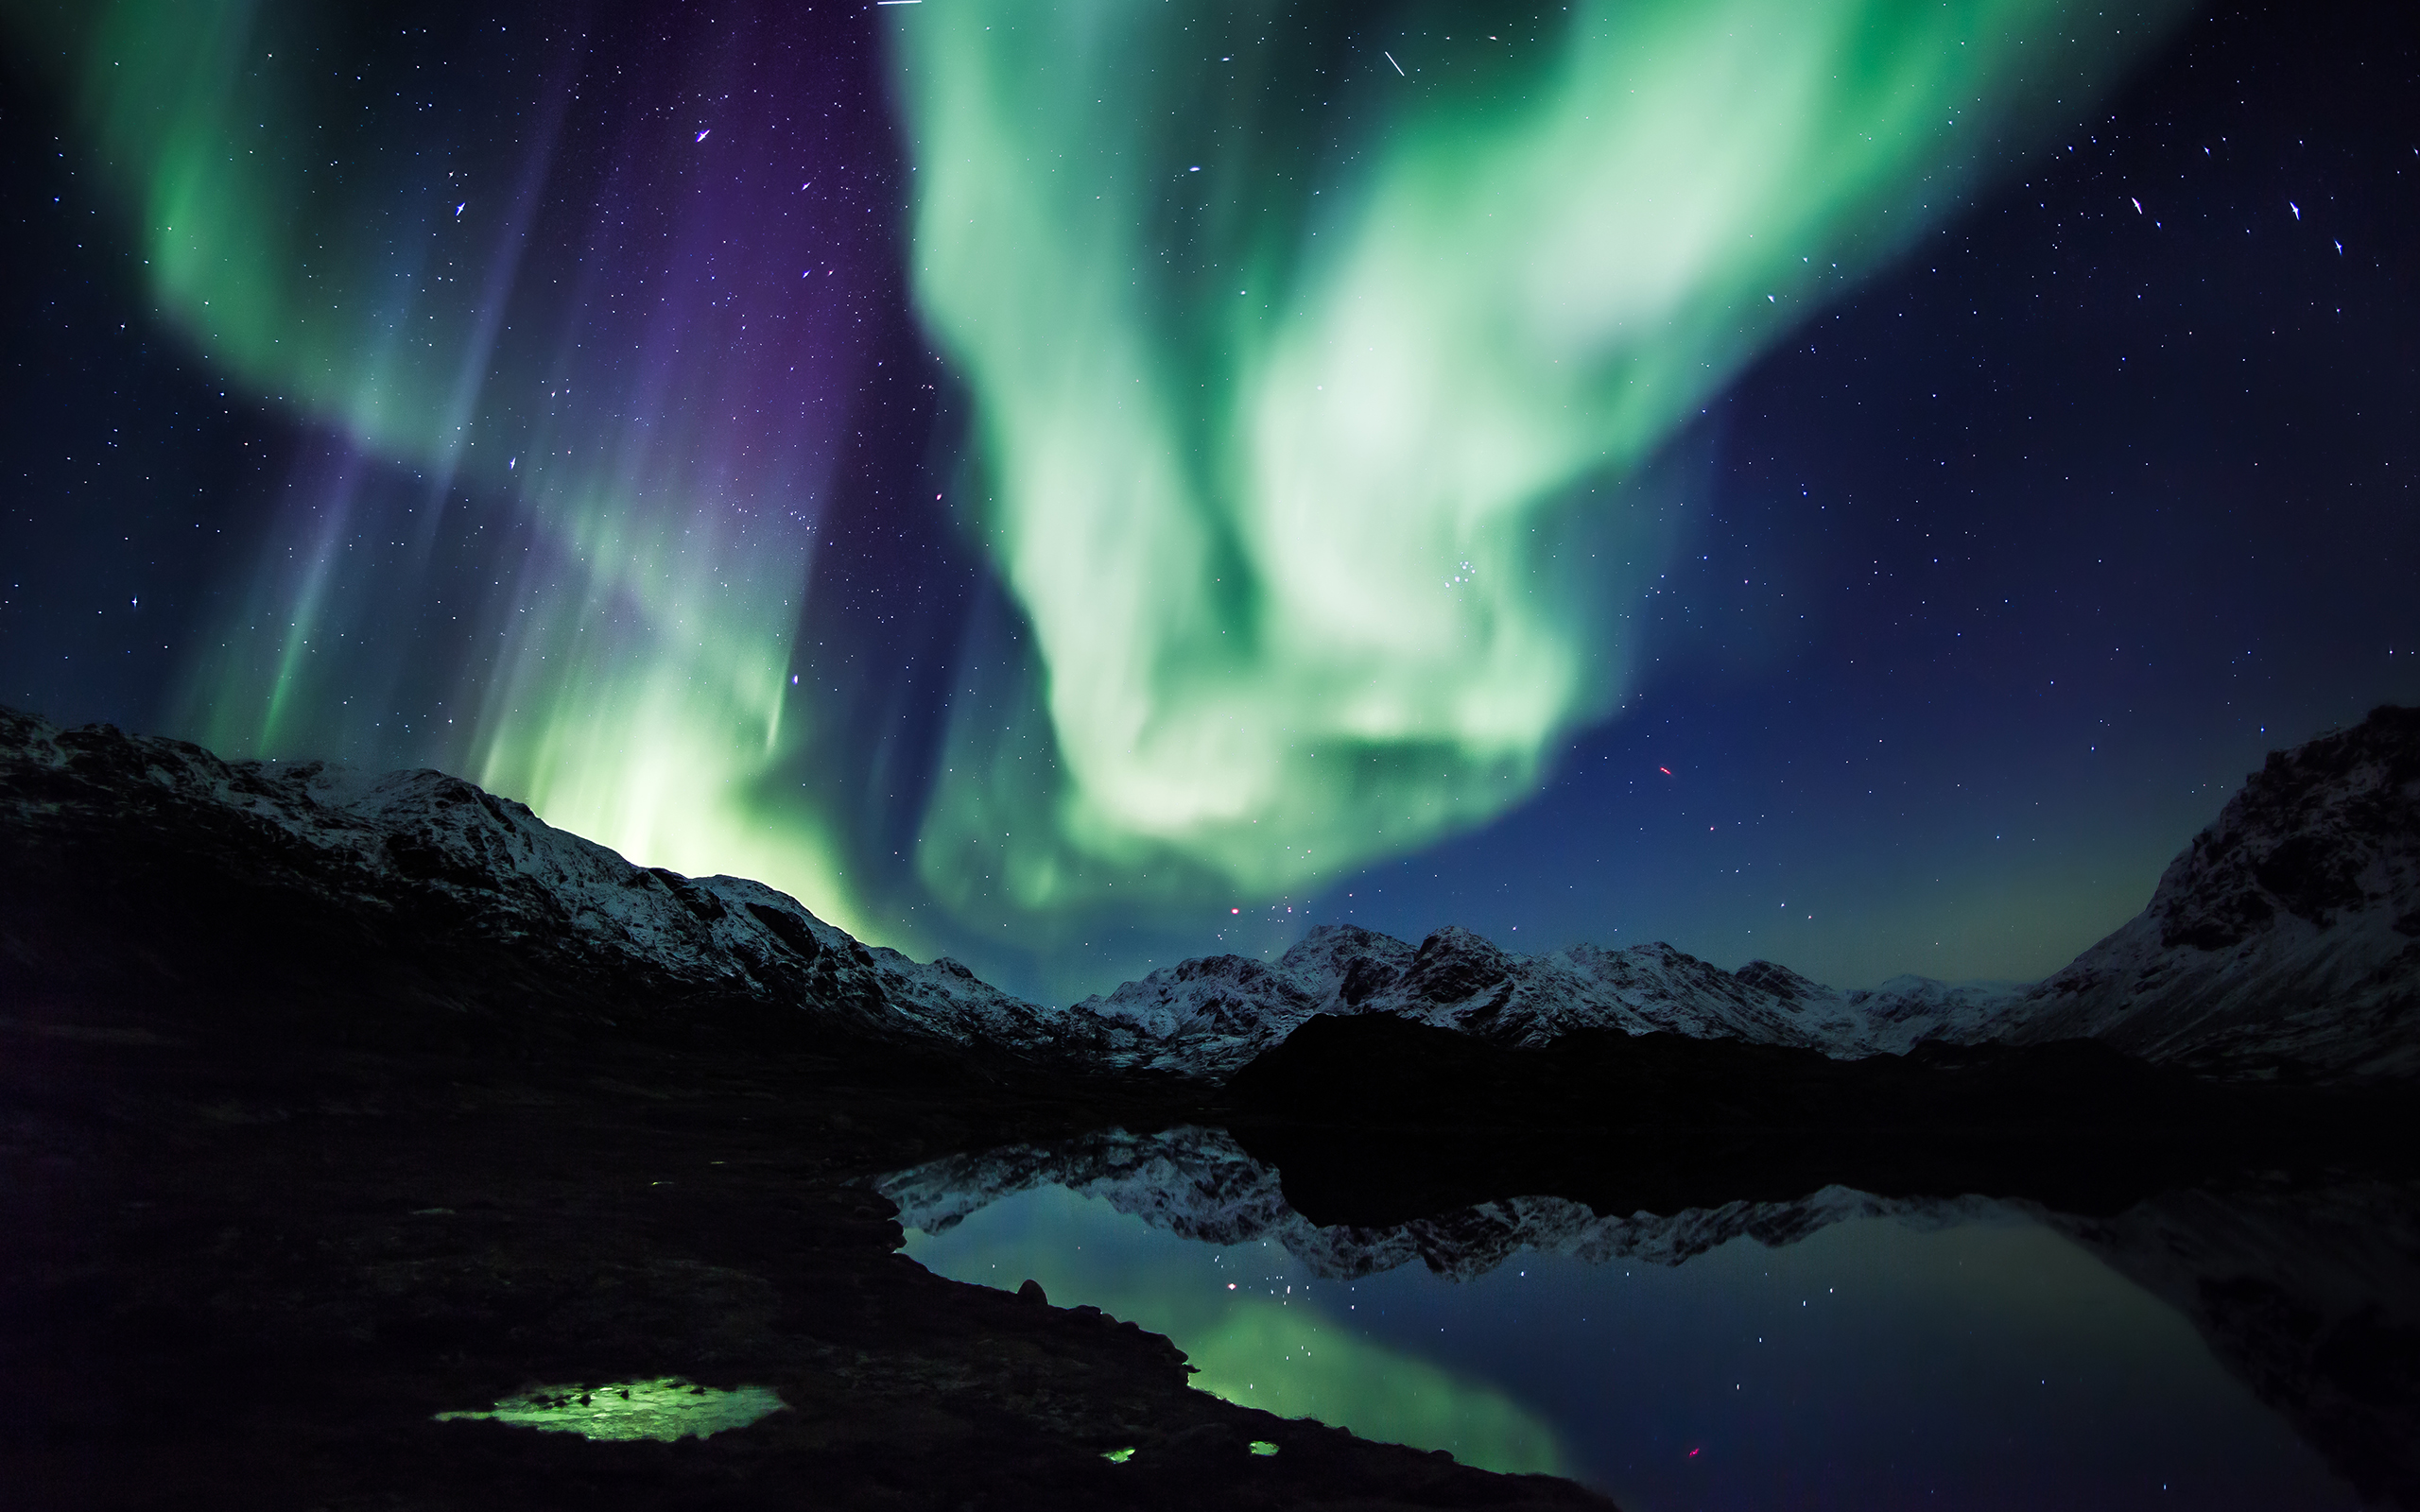 Northern Lights Wallpaper 4k Wallpapersafari Glitter Wallpaper Creepypasta Choose from Our Pictures  Collections Wallpapers [x-site.ml]